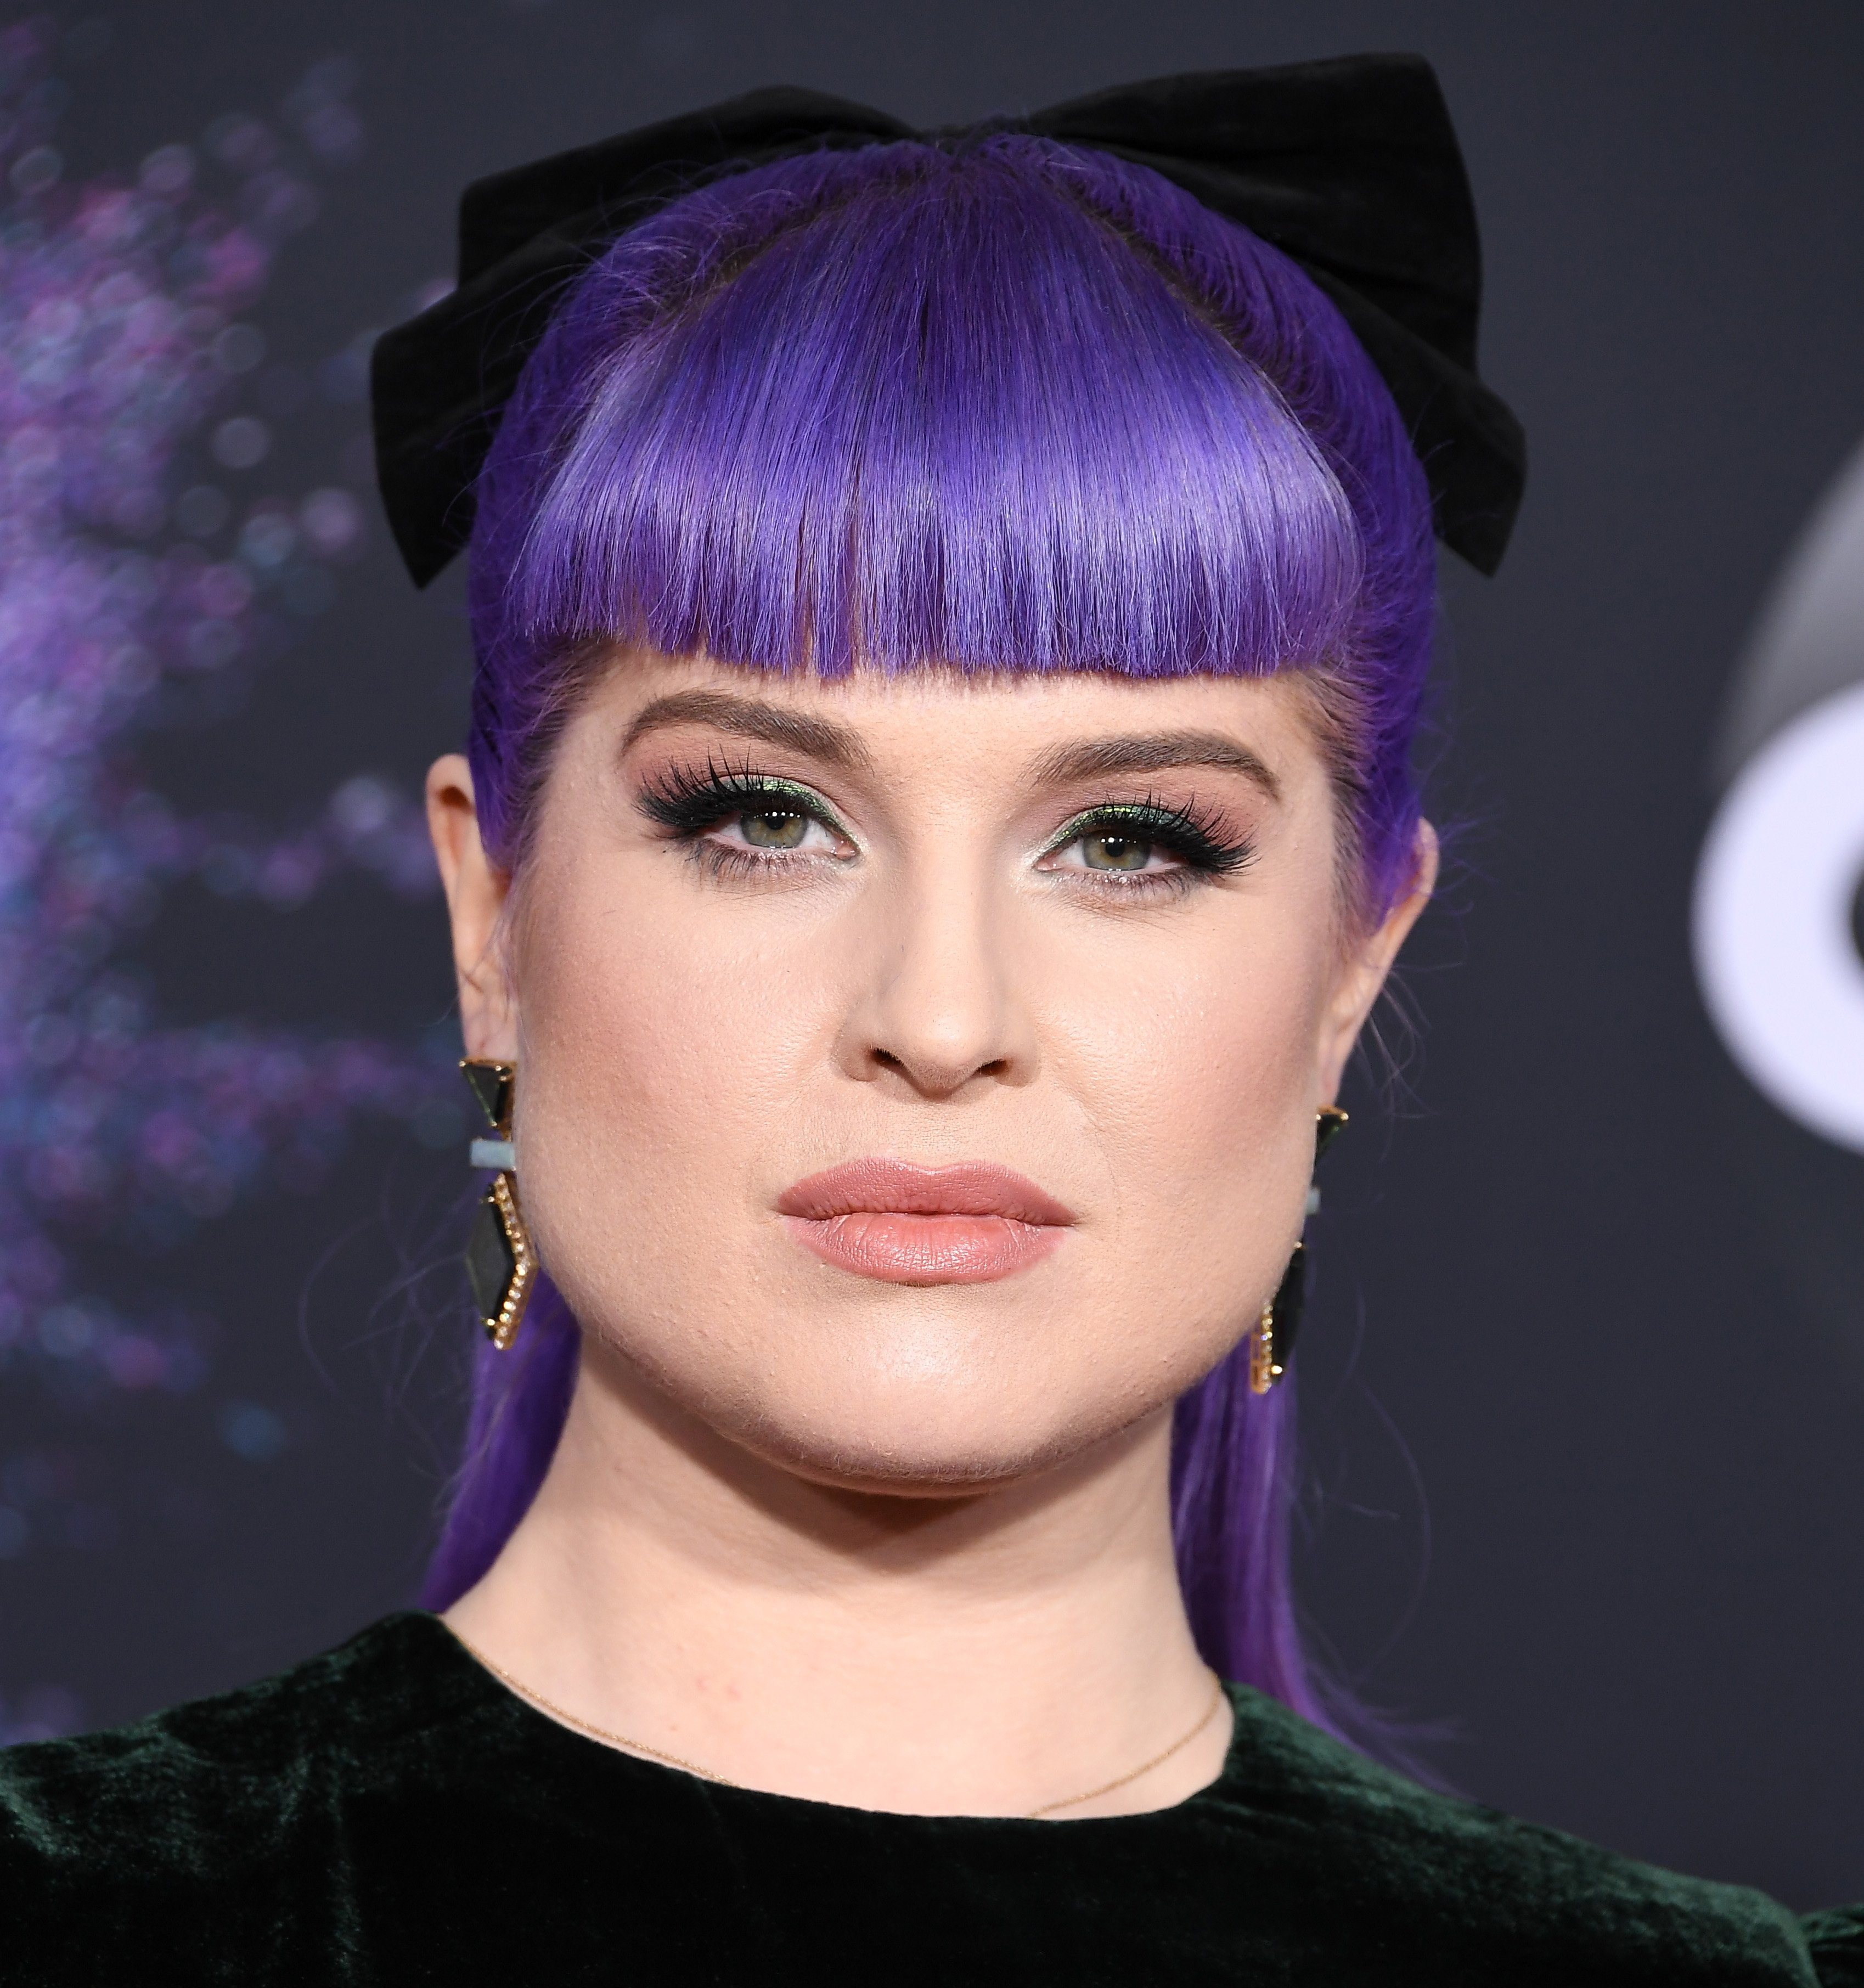 Kelly Osbourne arrives at the 2019 American Music Awards on November 24, 2019 in Los Angeles, California | Photo: Getty Images